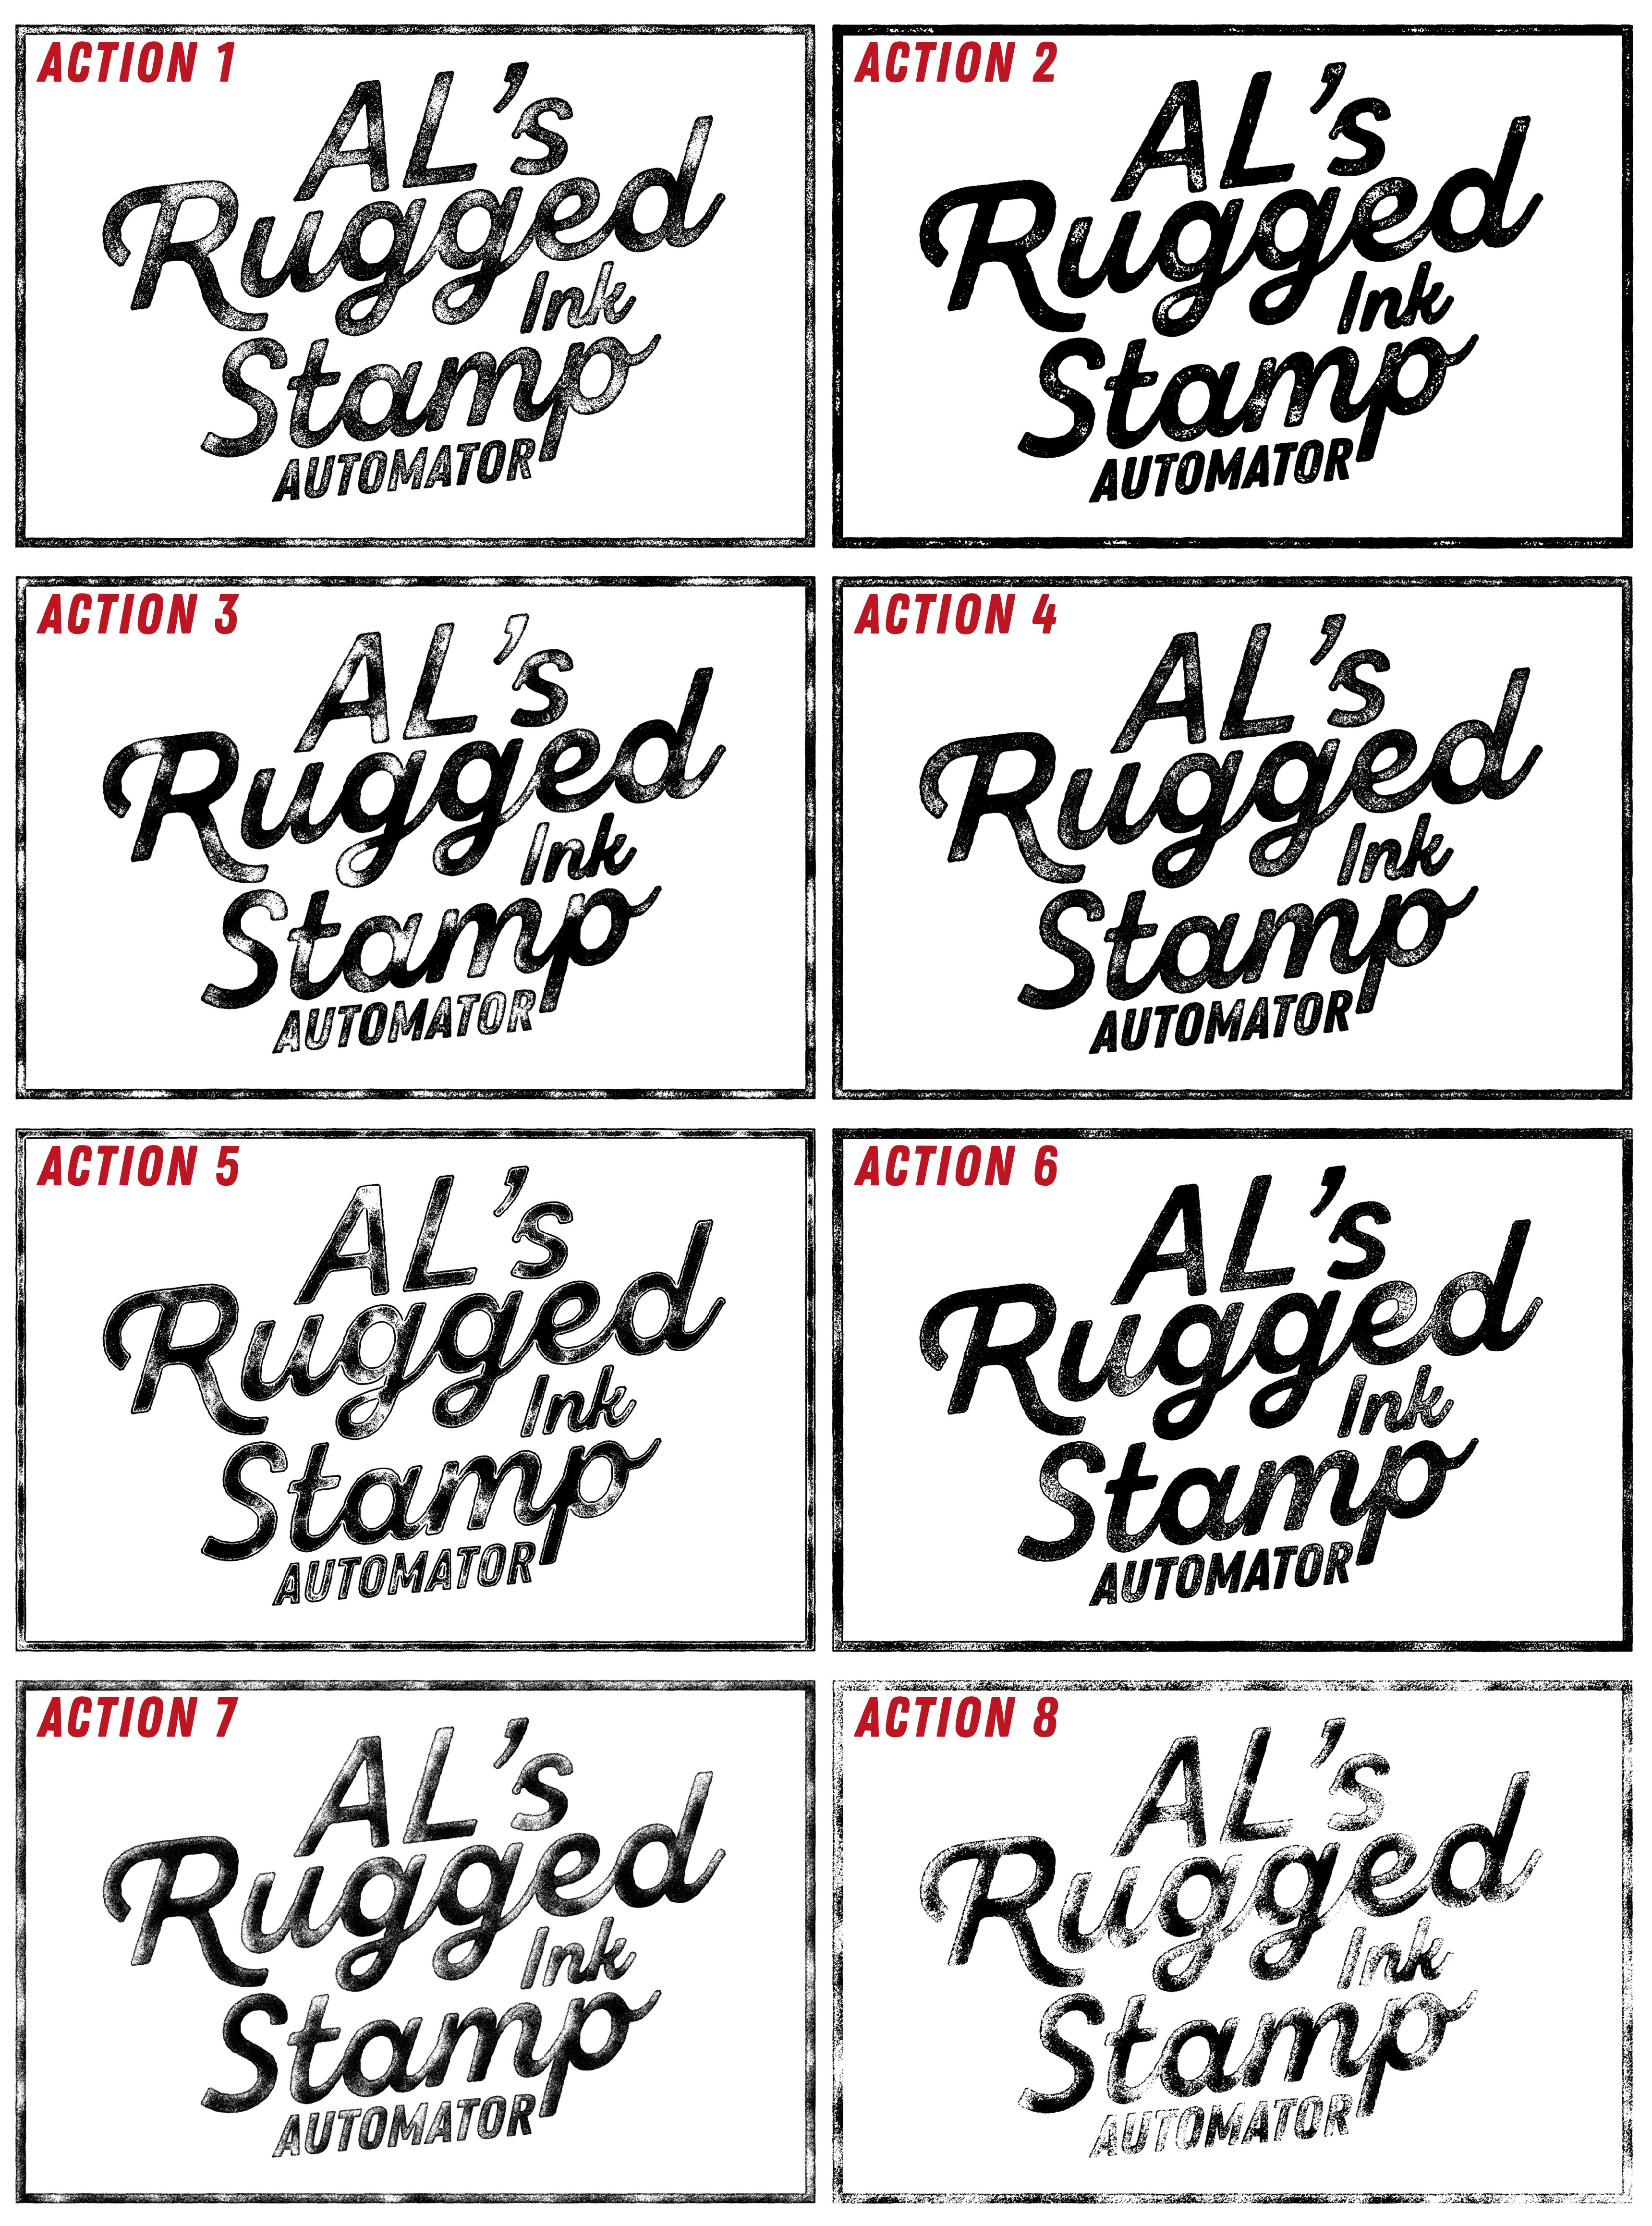 [Image: als-rugged-ink-stamp-automator-06-.jpg?1...d80df5aa26]